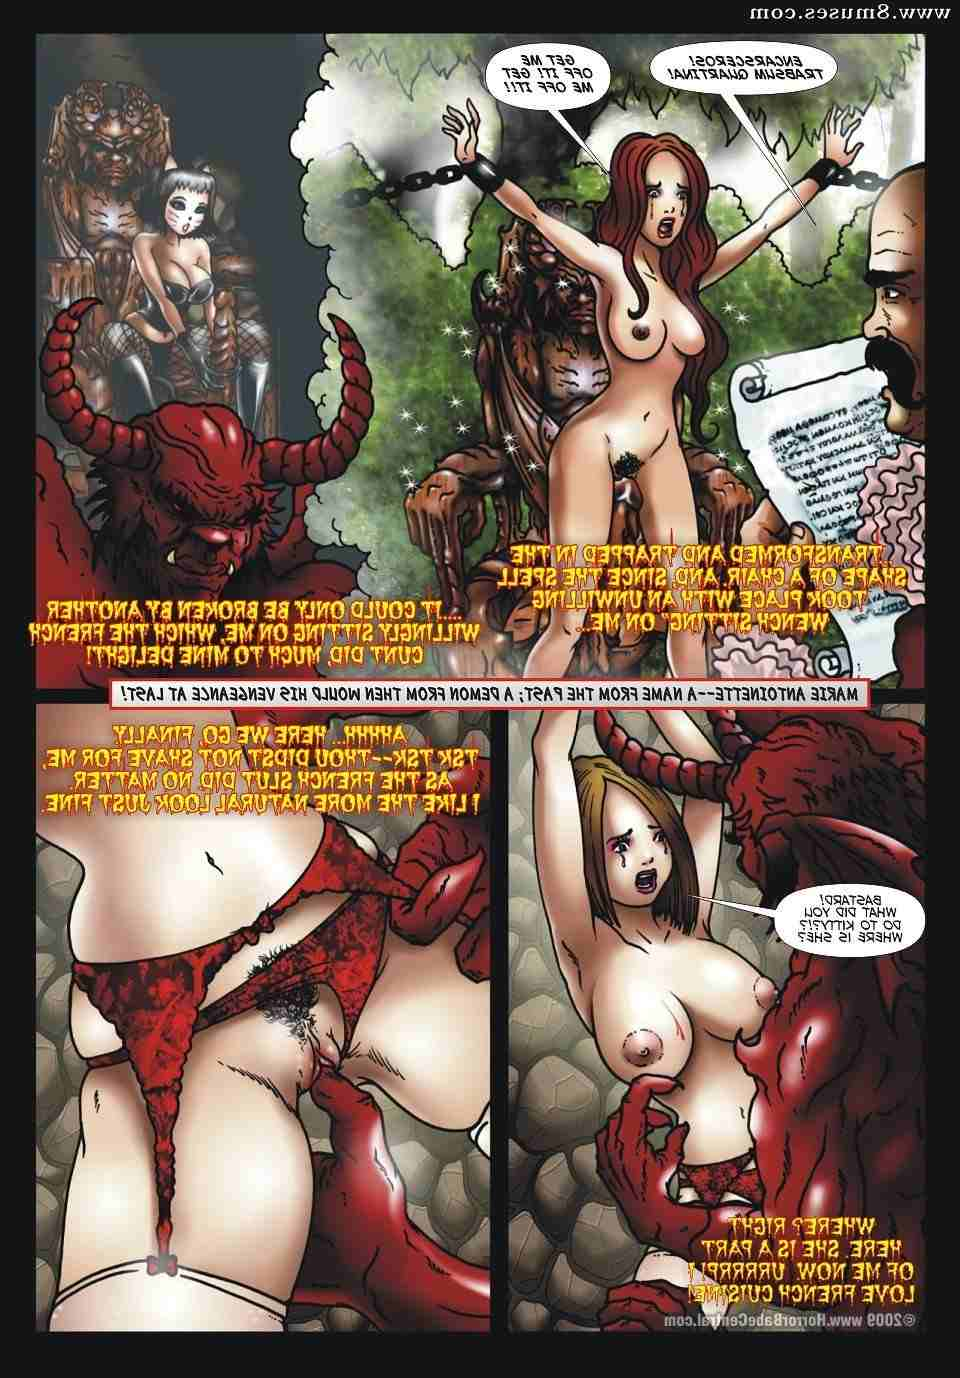 Central-Comics/Horror-Babe-Central/Fable-of-Fright Fable_of_Fright__8muses_-_Sex_and_Porn_Comics_94.jpg